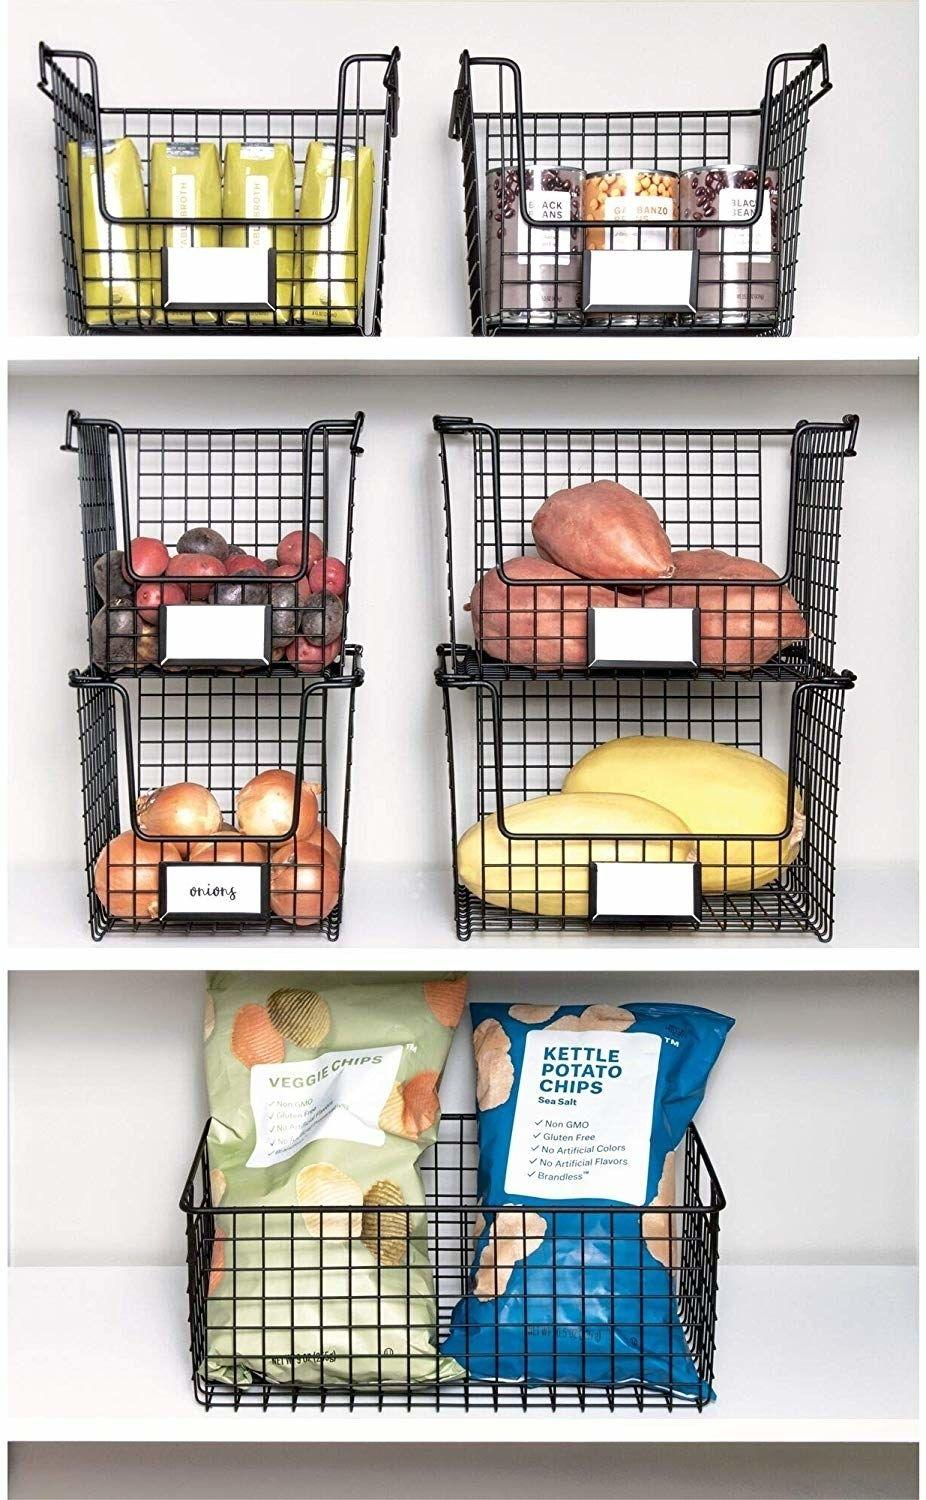 """Make your pantry look picture-perfect and know exactly where your cans of black beans are.<br /><br /><strong>Promising review:</strong>""""I love these baskets. They have lots of space and look great in my pantry."""" —<a href=""""https://www.amazon.com/gp/customer-reviews/RWU5IRAPIOINU?&linkCode=ll2&tag=huffpost-bfsyndication-20&linkId=63dcd7da36002981b5207aa48be0d445&language=en_US&ref_=as_li_ss_tl"""" target=""""_blank"""" rel=""""nofollow noopener noreferrer"""" data-skimlinks-tracking=""""5854435"""" data-vars-affiliate=""""Amazon"""" data-vars-href=""""https://www.amazon.com/gp/customer-reviews/RWU5IRAPIOINU?tag=bfmal-20&ascsubtag=5854435%2C21%2C37%2Cmobile_web%2C0%2C0%2C16324224"""" data-vars-keywords=""""cleaning,fast fashion"""" data-vars-link-id=""""16324224"""" data-vars-price="""""""" data-vars-product-id=""""20942028"""" data-vars-product-img="""""""" data-vars-product-title="""""""" data-vars-retailers=""""Amazon"""">Yesenia<br /><br /></a><strong>Get it from Amazon for<a href=""""https://www.amazon.com/iDesign-Classico-Stackable-Countertop-Organization/dp/B07MVX8C9J?&linkCode=ll1&tag=huffpost-bfsyndication-20&linkId=bc040d1f0fa64ec1db1b09e4bfc82ef2&language=en_US&ref_=as_li_ss_tl"""" target=""""_blank"""" rel=""""nofollow noopener noreferrer"""" data-skimlinks-tracking=""""5854435"""" data-vars-affiliate=""""Amazon"""" data-vars-asin=""""B07Q7D67WZ"""" data-vars-href=""""https://www.amazon.com/dp/B07Q7D67WZ?tag=bfmal-20&ascsubtag=5854435%2C21%2C37%2Cmobile_web%2C0%2C0%2C16324336"""" data-vars-keywords=""""cleaning,fast fashion"""" data-vars-link-id=""""16324336"""" data-vars-price="""""""" data-vars-product-id=""""18668647"""" data-vars-product-img=""""https://m.media-amazon.com/images/I/51z1-9G3eCL.jpg"""" data-vars-product-title=""""iDesign Classico Storage Basket with Handles for Pantry, Kitchen, Bathroom, Countertop, and Desk Organization, Stackable - Medium"""" data-vars-retailers=""""Amazon"""">$17.66+</a>(available in two sizes).</strong>"""